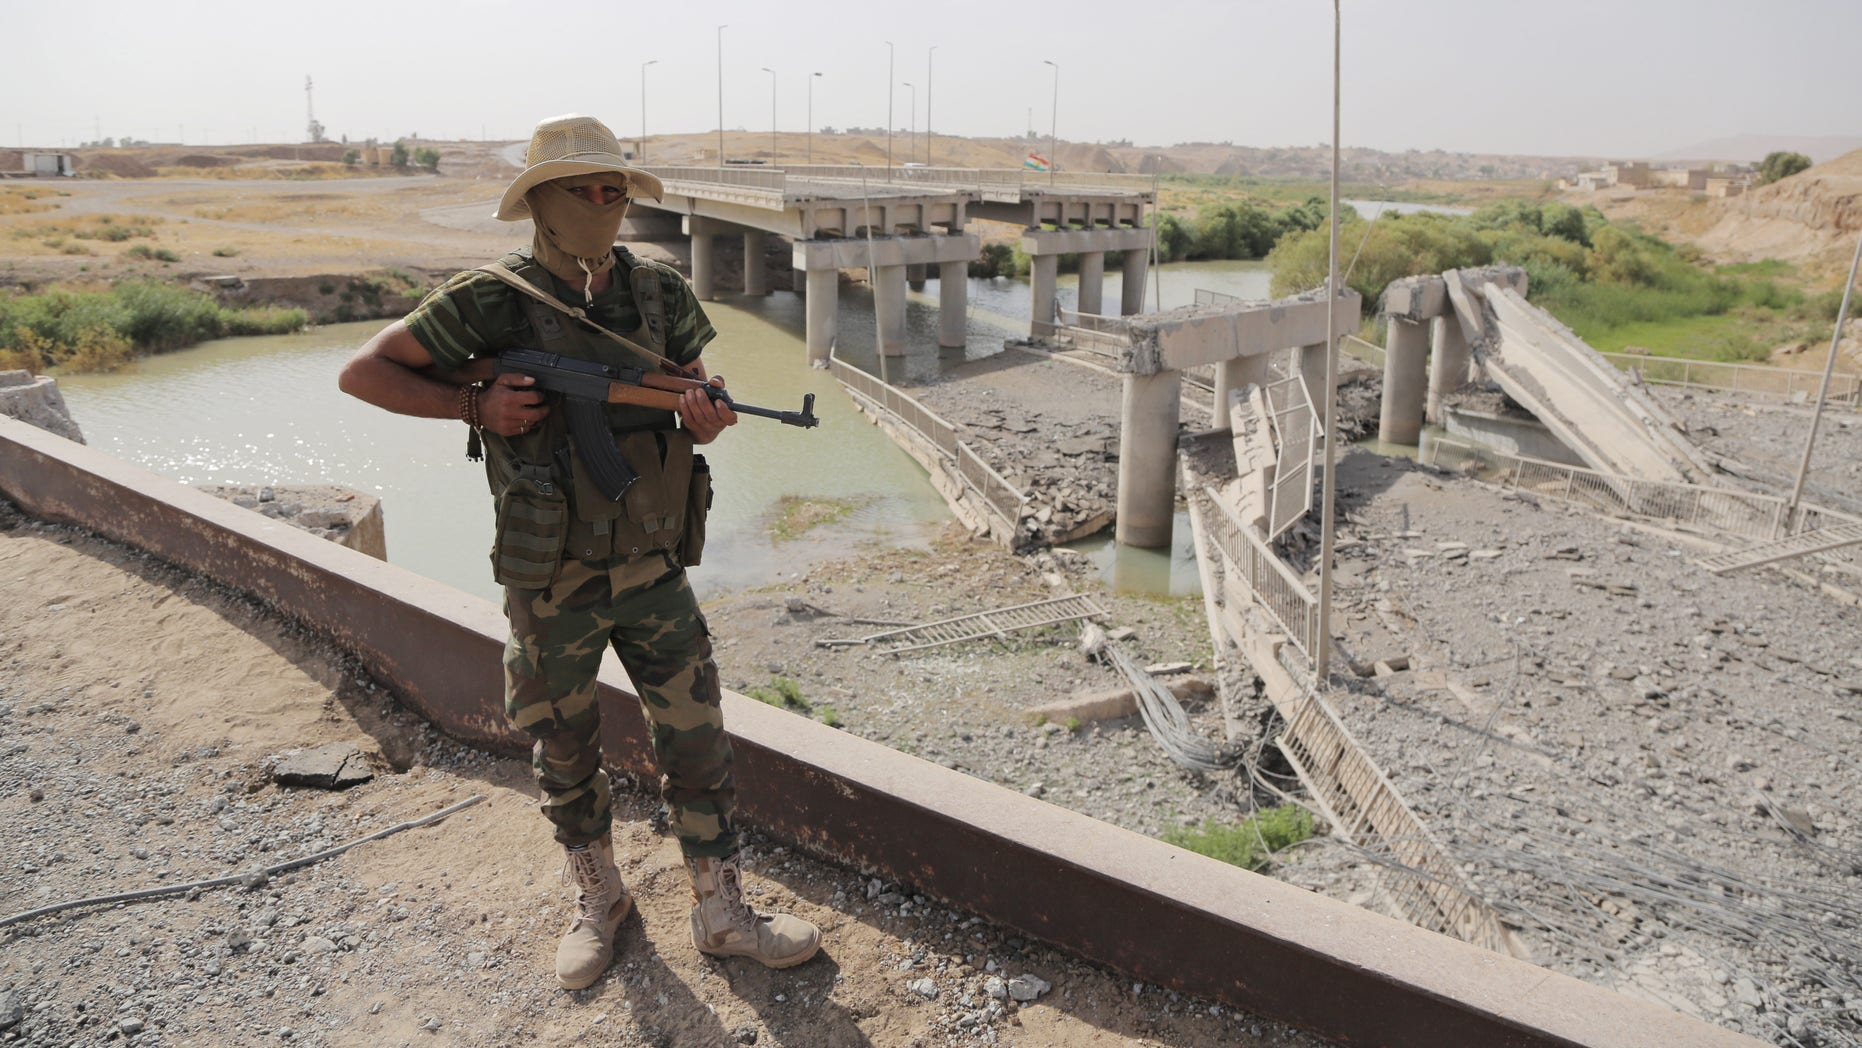 Sept. 20, 2014 - A Kurdish Peshmerga fighter stands guard near the Khazer bridge, on a  road between Mosul and Irbil, Iraq, destroyed by ISIS fighters in clashes with Kurdish forces. The destruction of the bridge cut off the road for civilians to Mosul and nearby Christian villages.